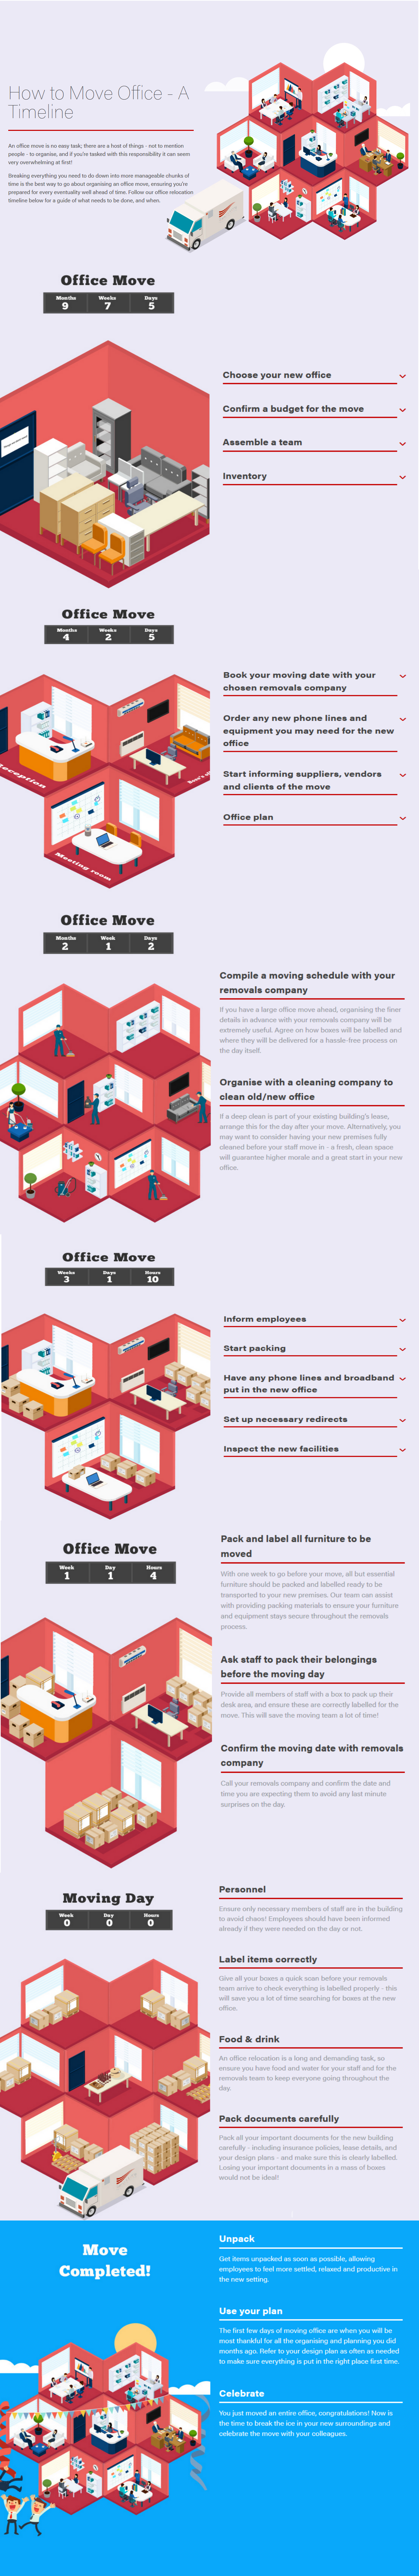 how to move office infographic